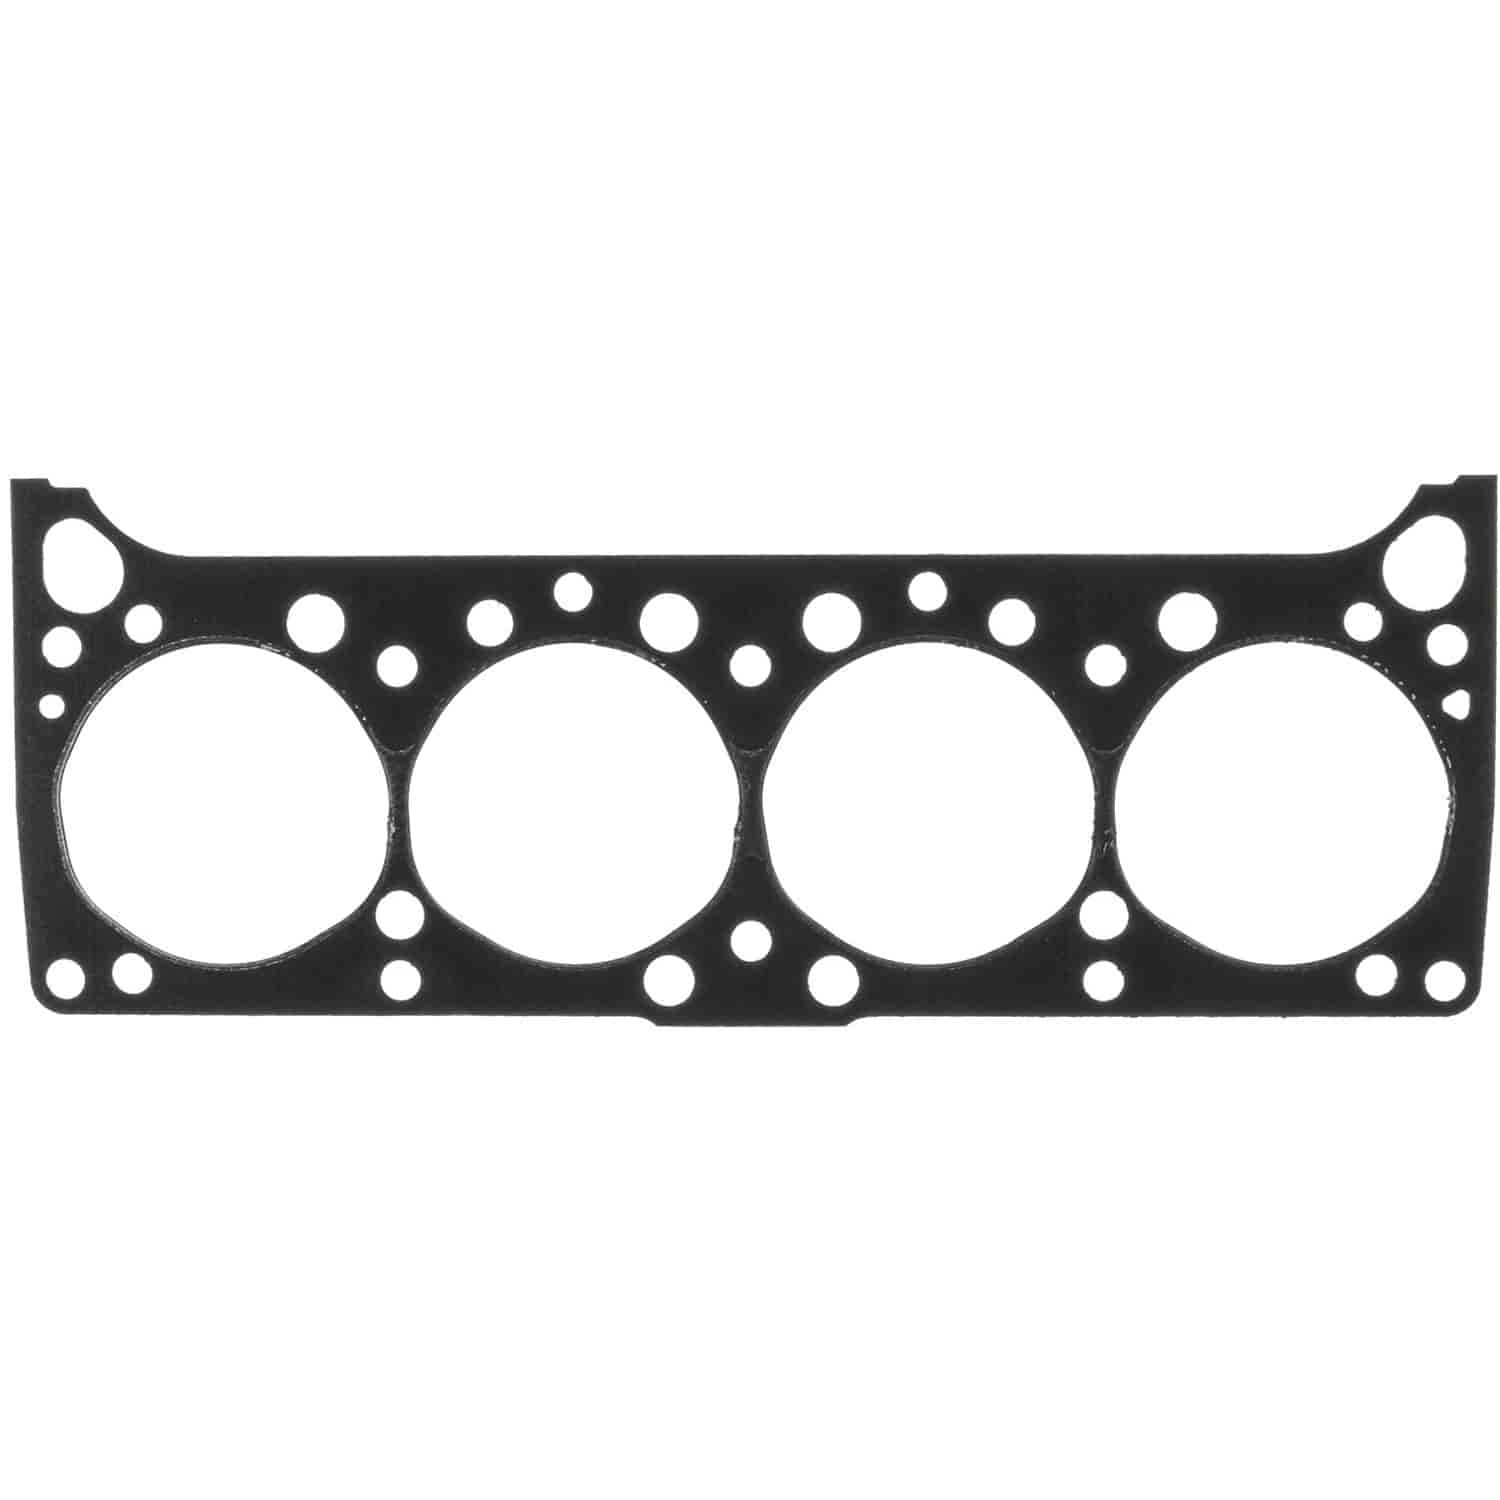 Clevite Mahle Vc Cylinder Head Gasket